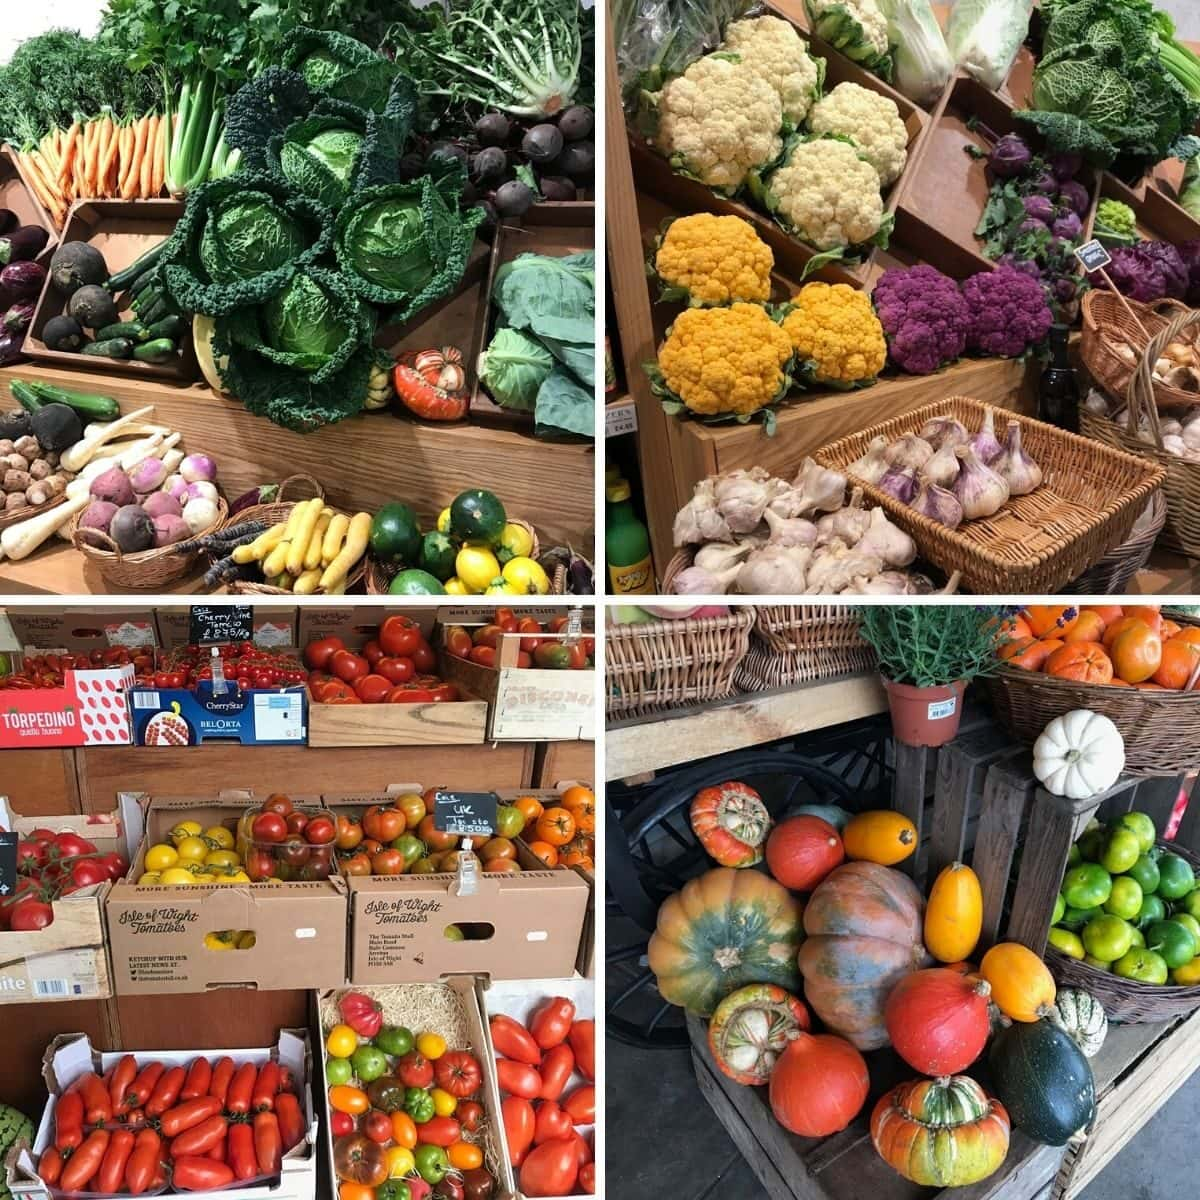 Four photos showing various seasonal produce